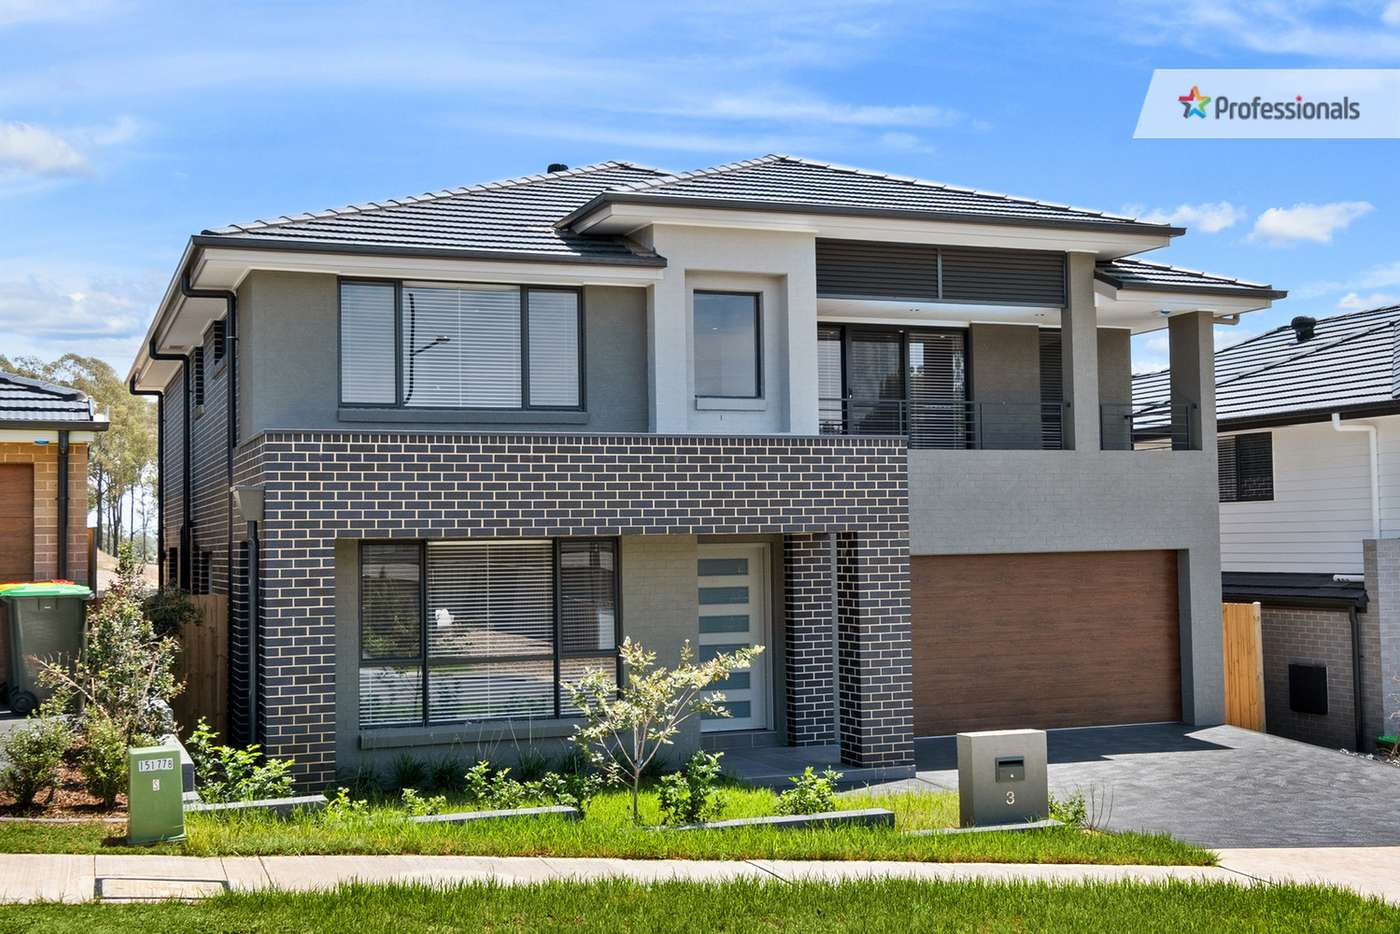 Main view of Homely house listing, 3 Corvus Way, Box Hill NSW 2765